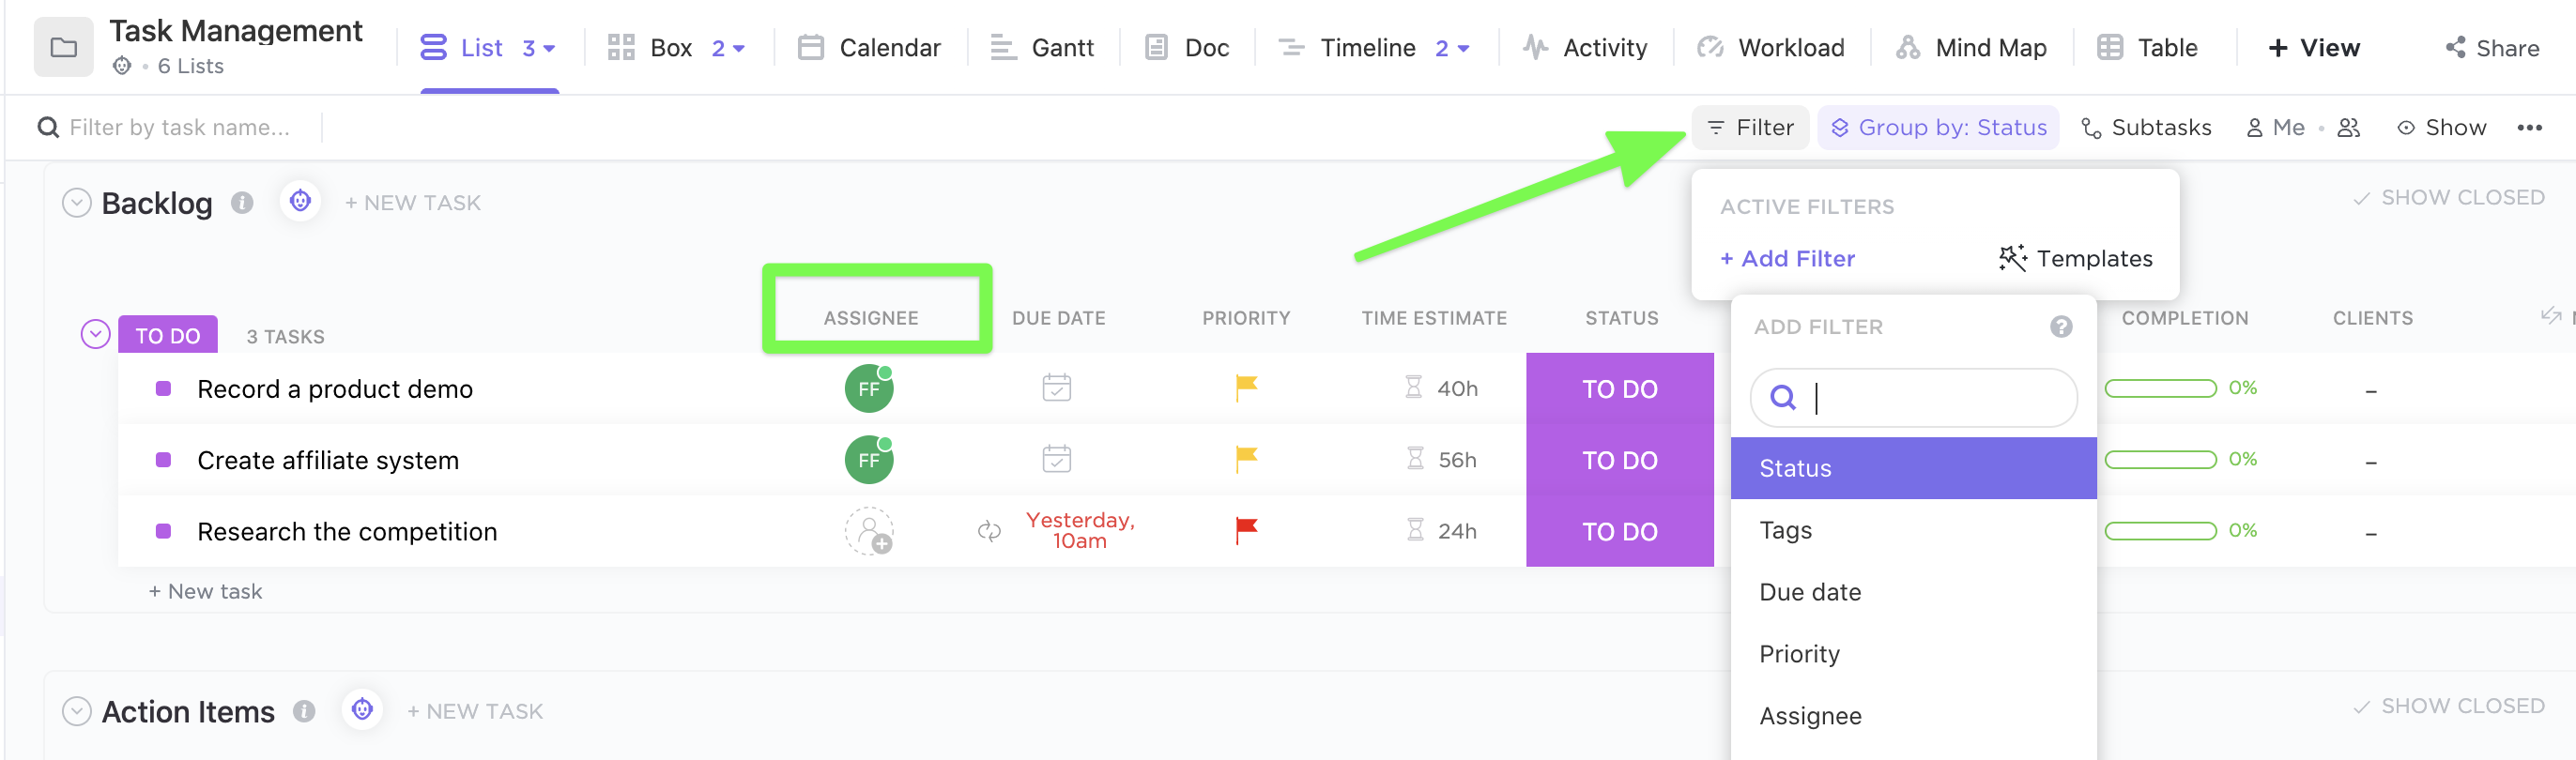 Filtering for assignees